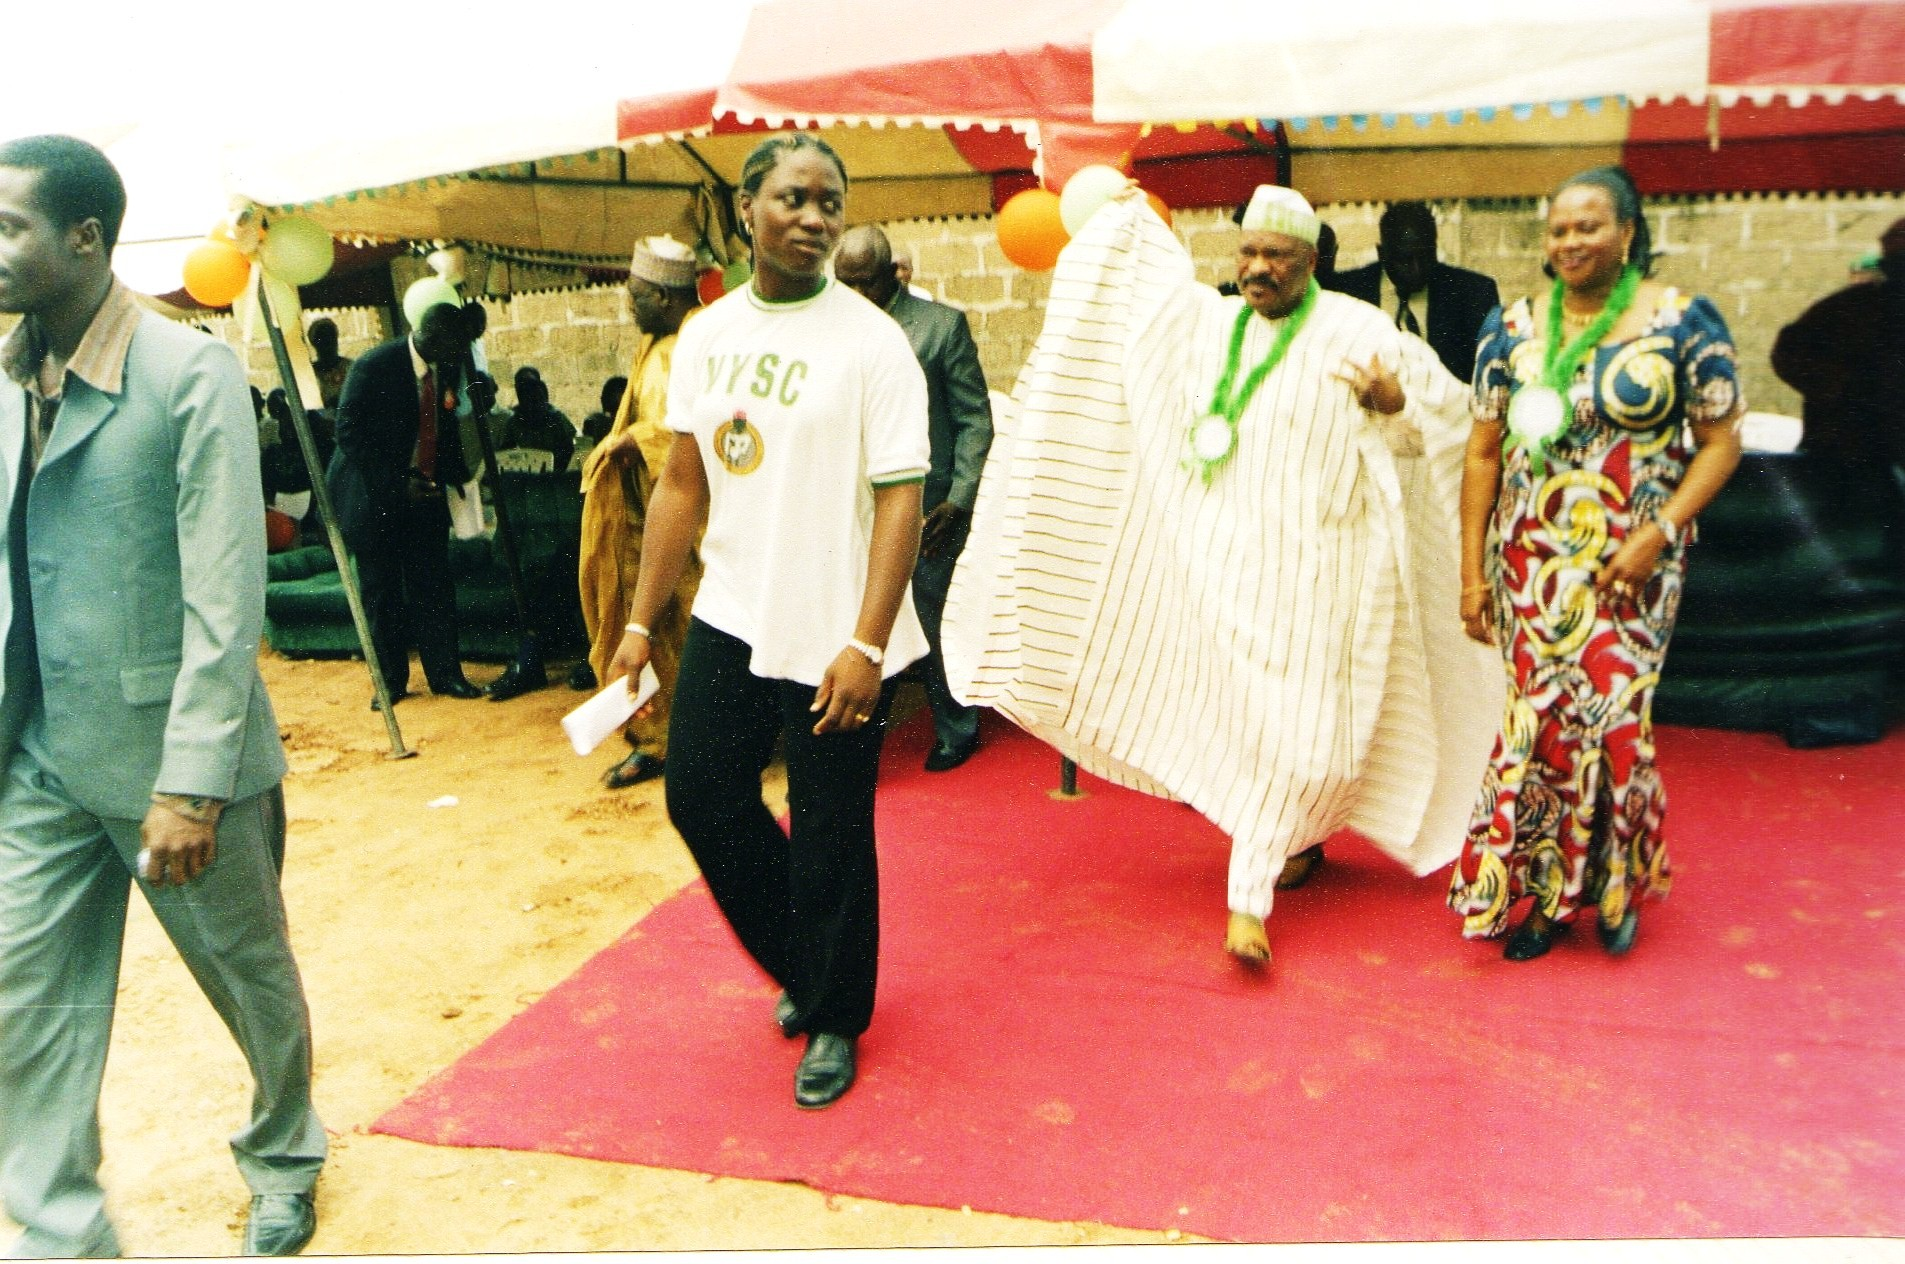 Leading The Special Guests Of Honour To the Hall